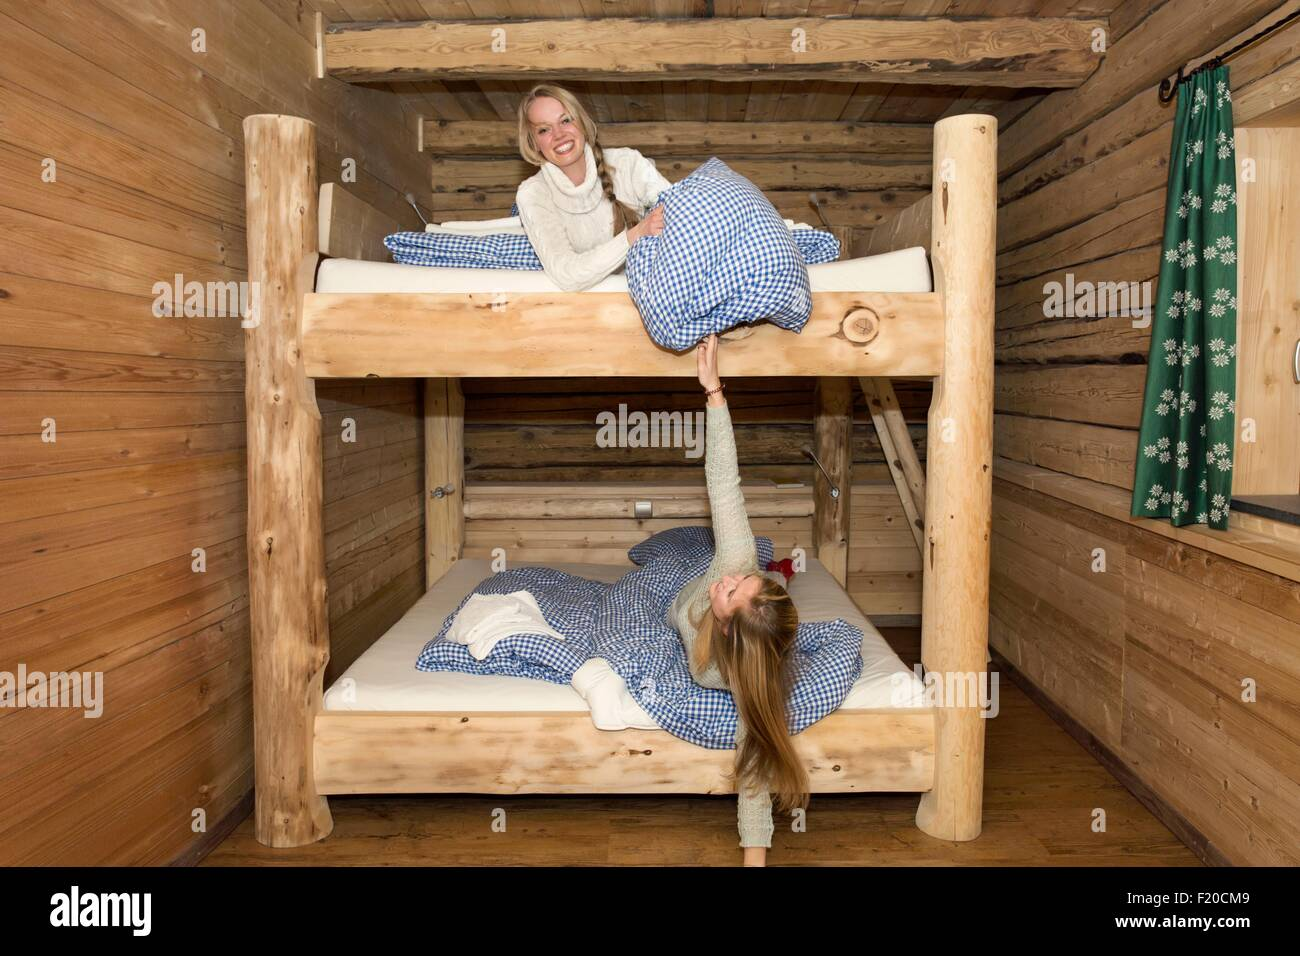 Two young women friends fooling around with pillows on bunk beds in log cabin - Stock Image